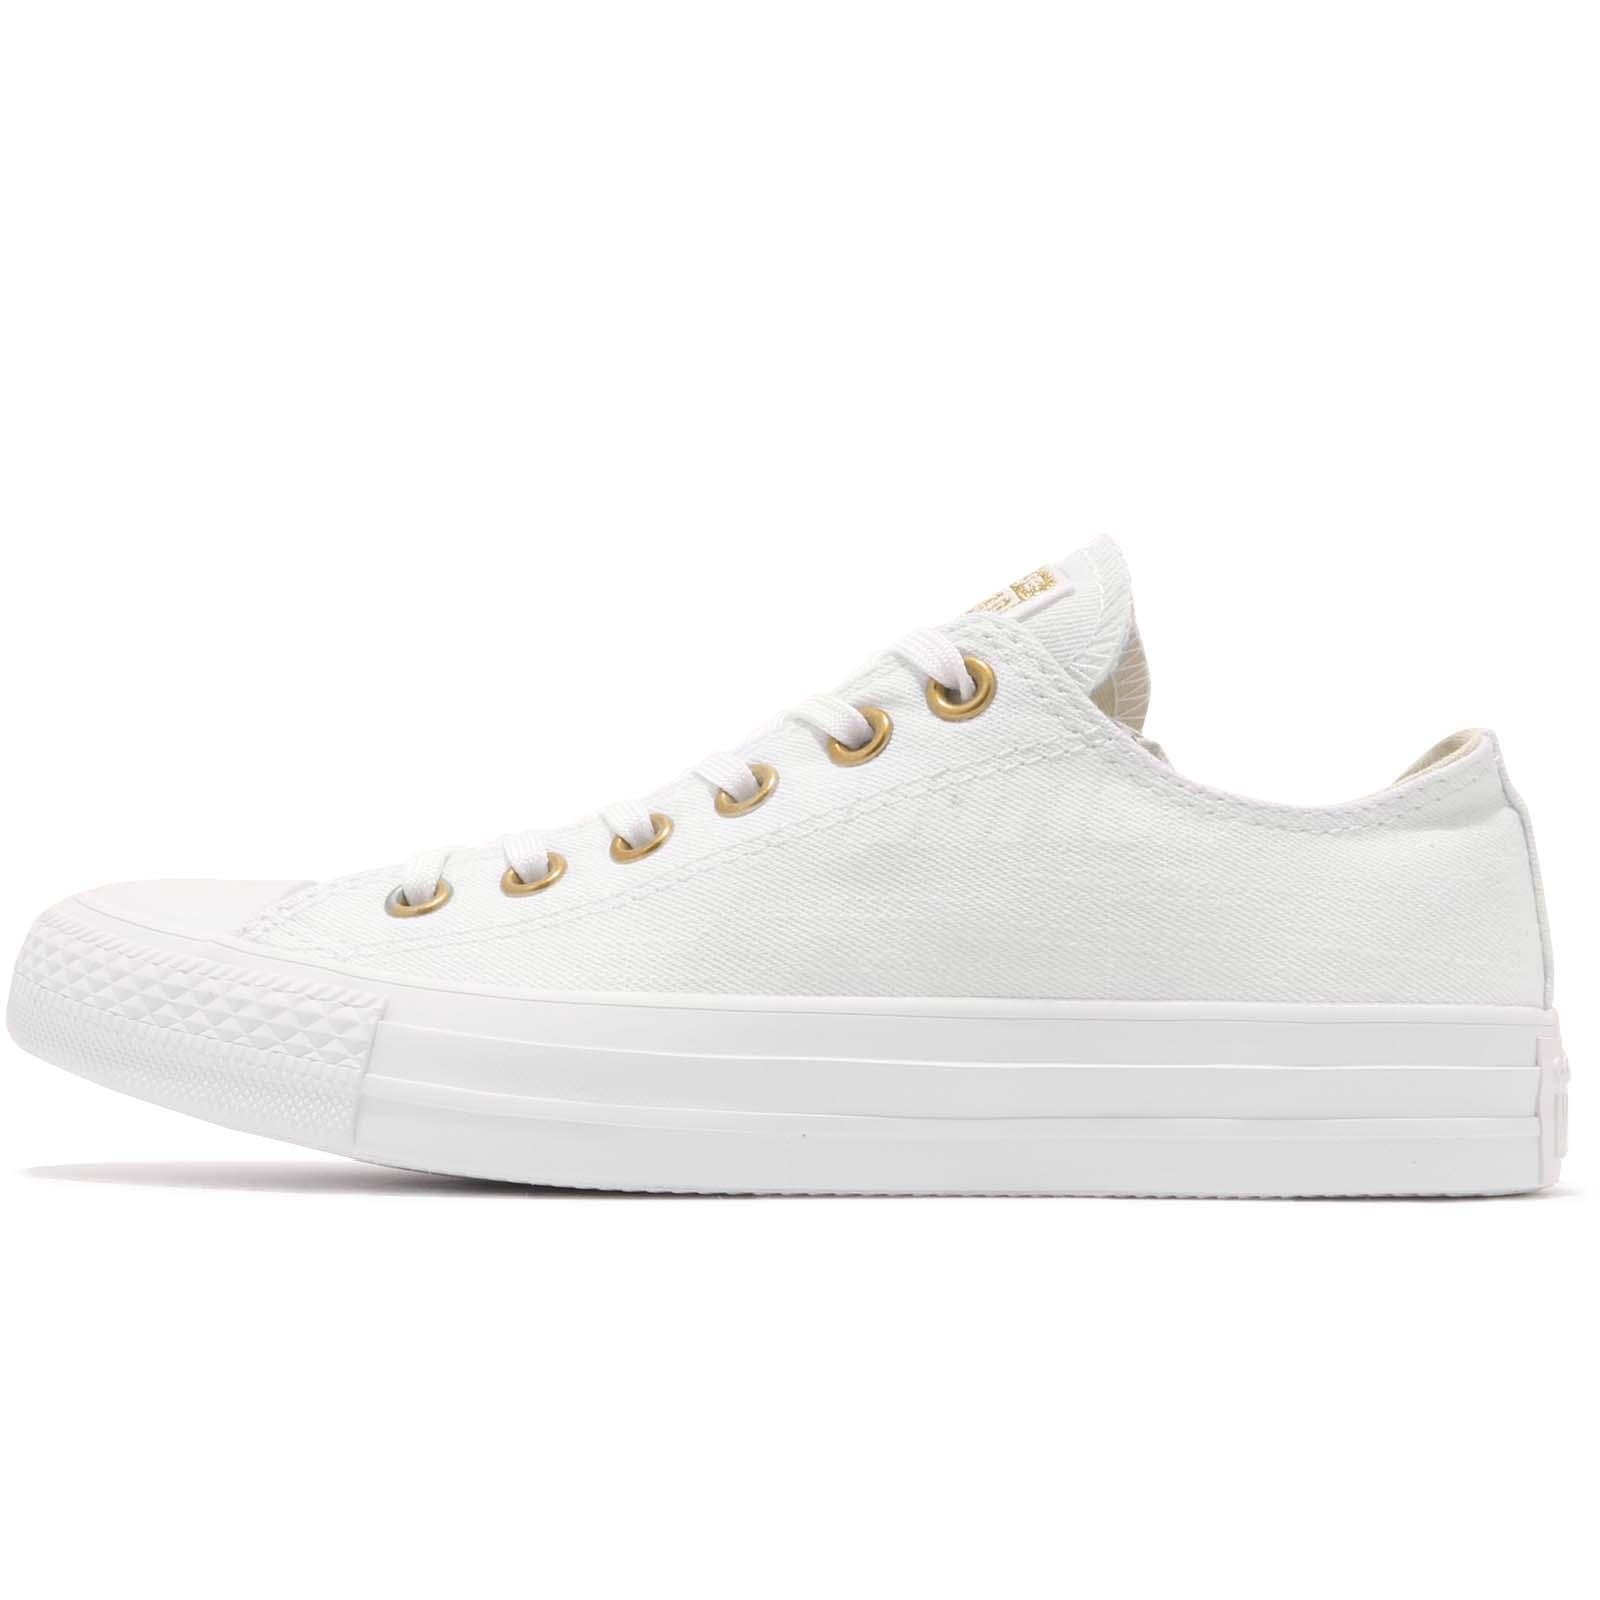 d7e95d9d508d9 Converse Chuck Taylor All Star Canvas White Gold Women Shoes Sneakers  560643C - mainstreetblytheville.org